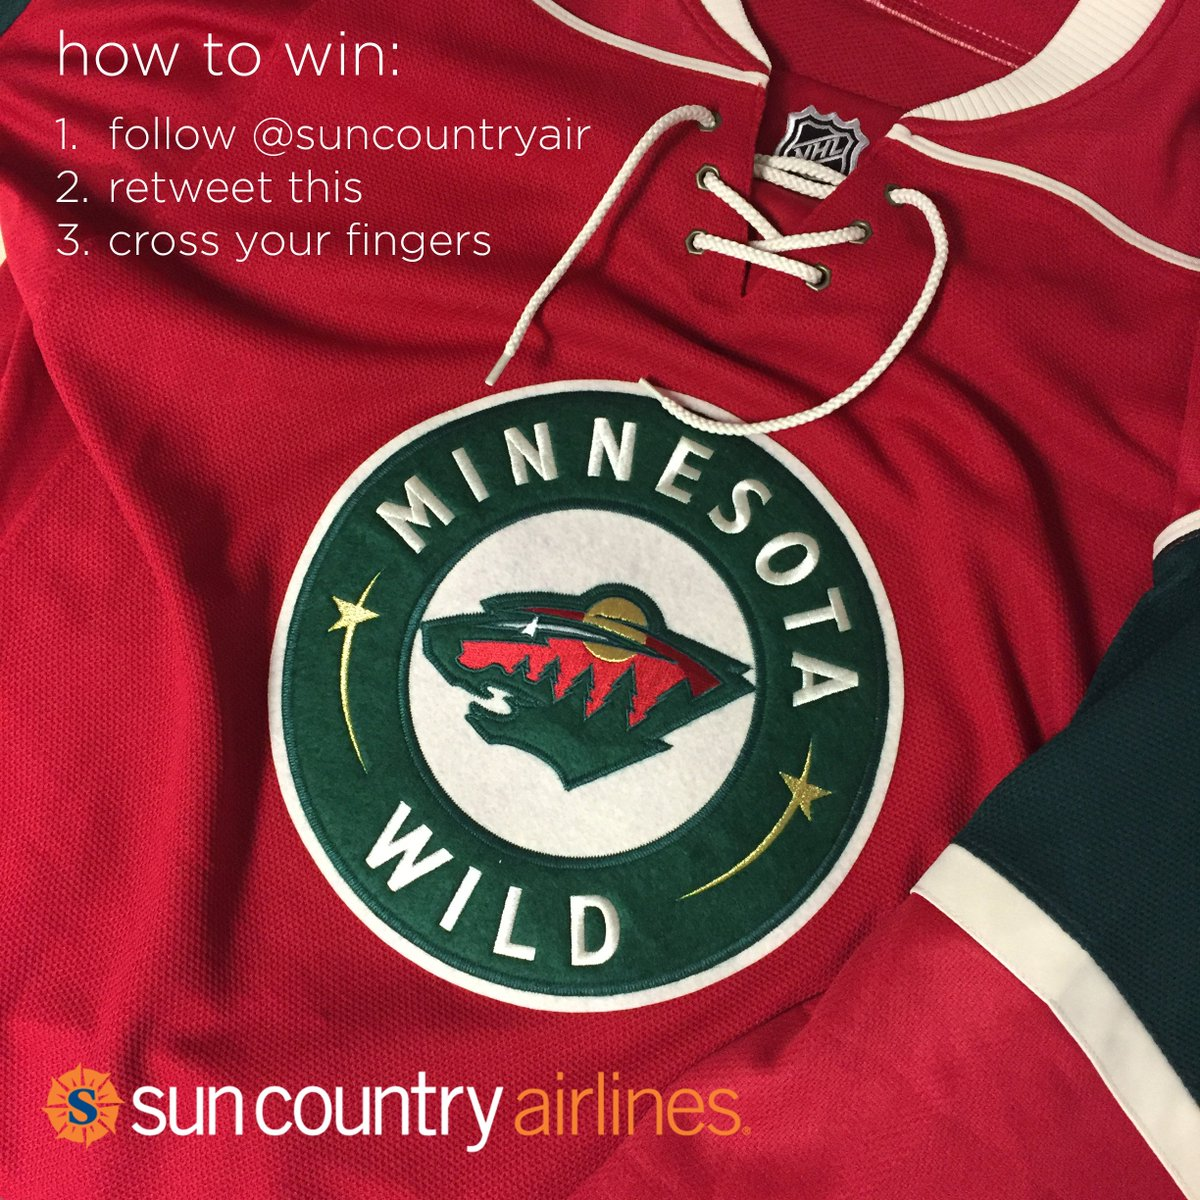 New Year – New MN Wild Jersey! Follow and RT for a chance to win! Official rules: https://t.co/OwEI28IgKG https://t.co/Z1dH4UpANb